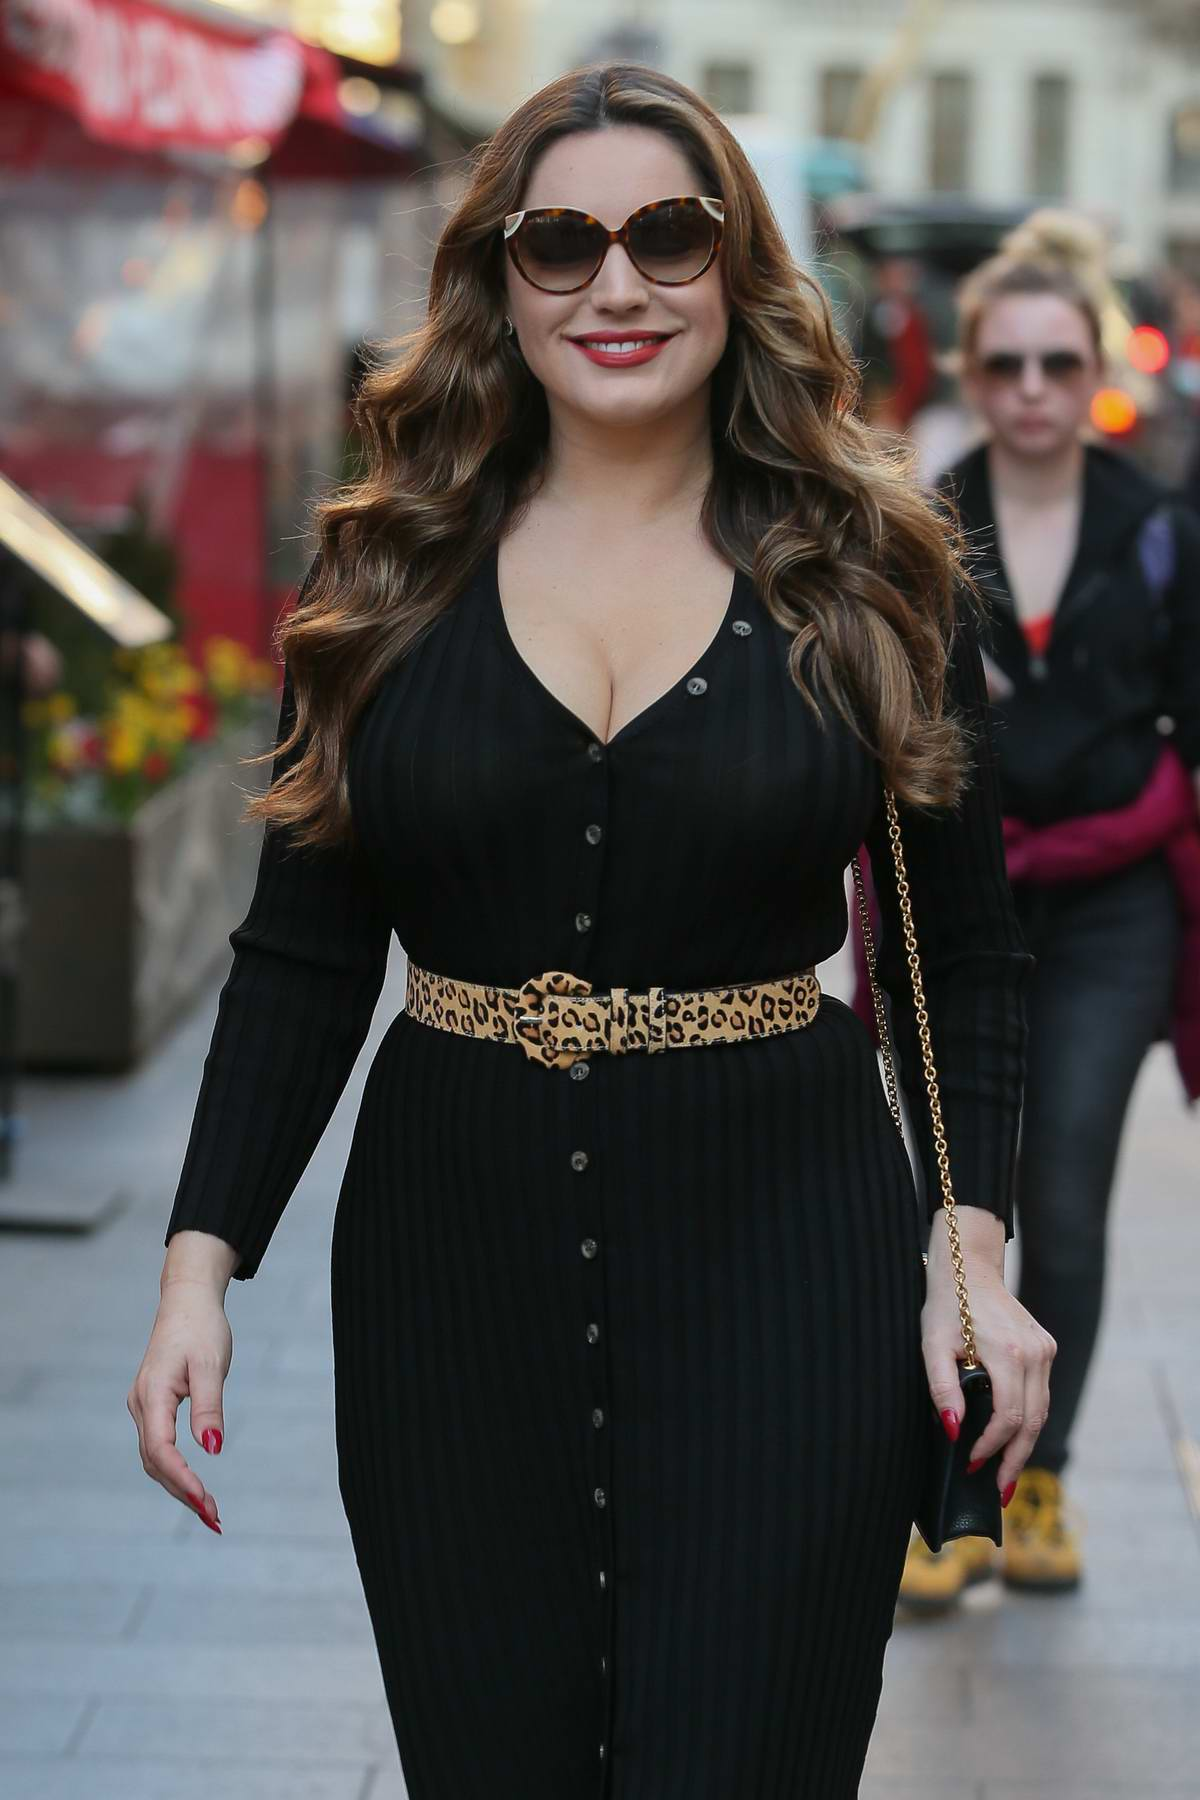 Kelly Brook dons a plunging black dress with leopard print heels and belt as she arrives for her show at Global Radio studios in London, UK